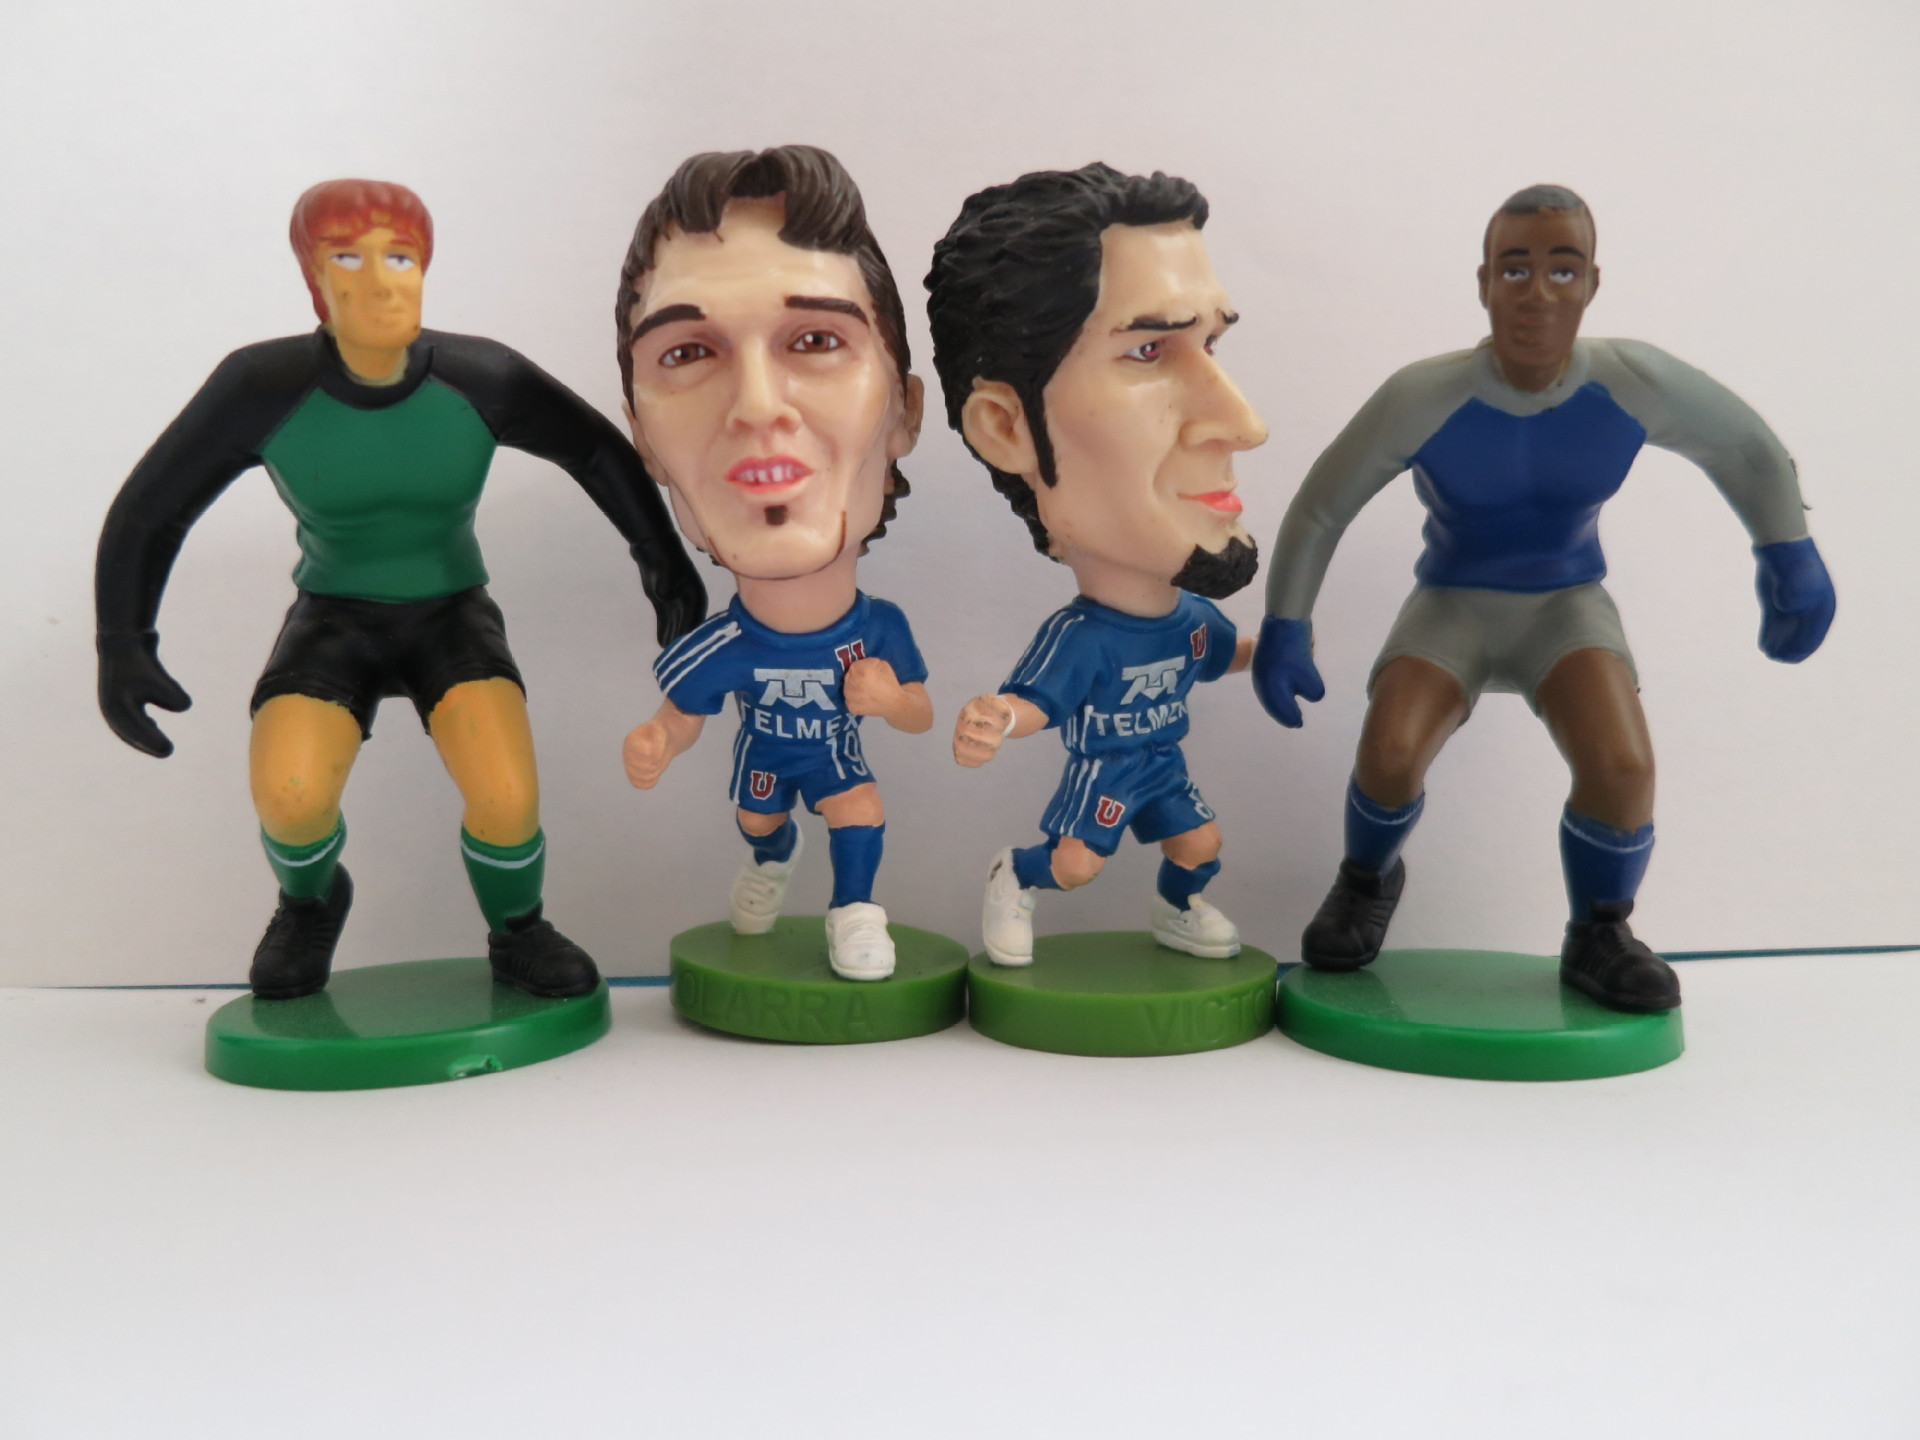 Soccer Player Action Figure - OEM